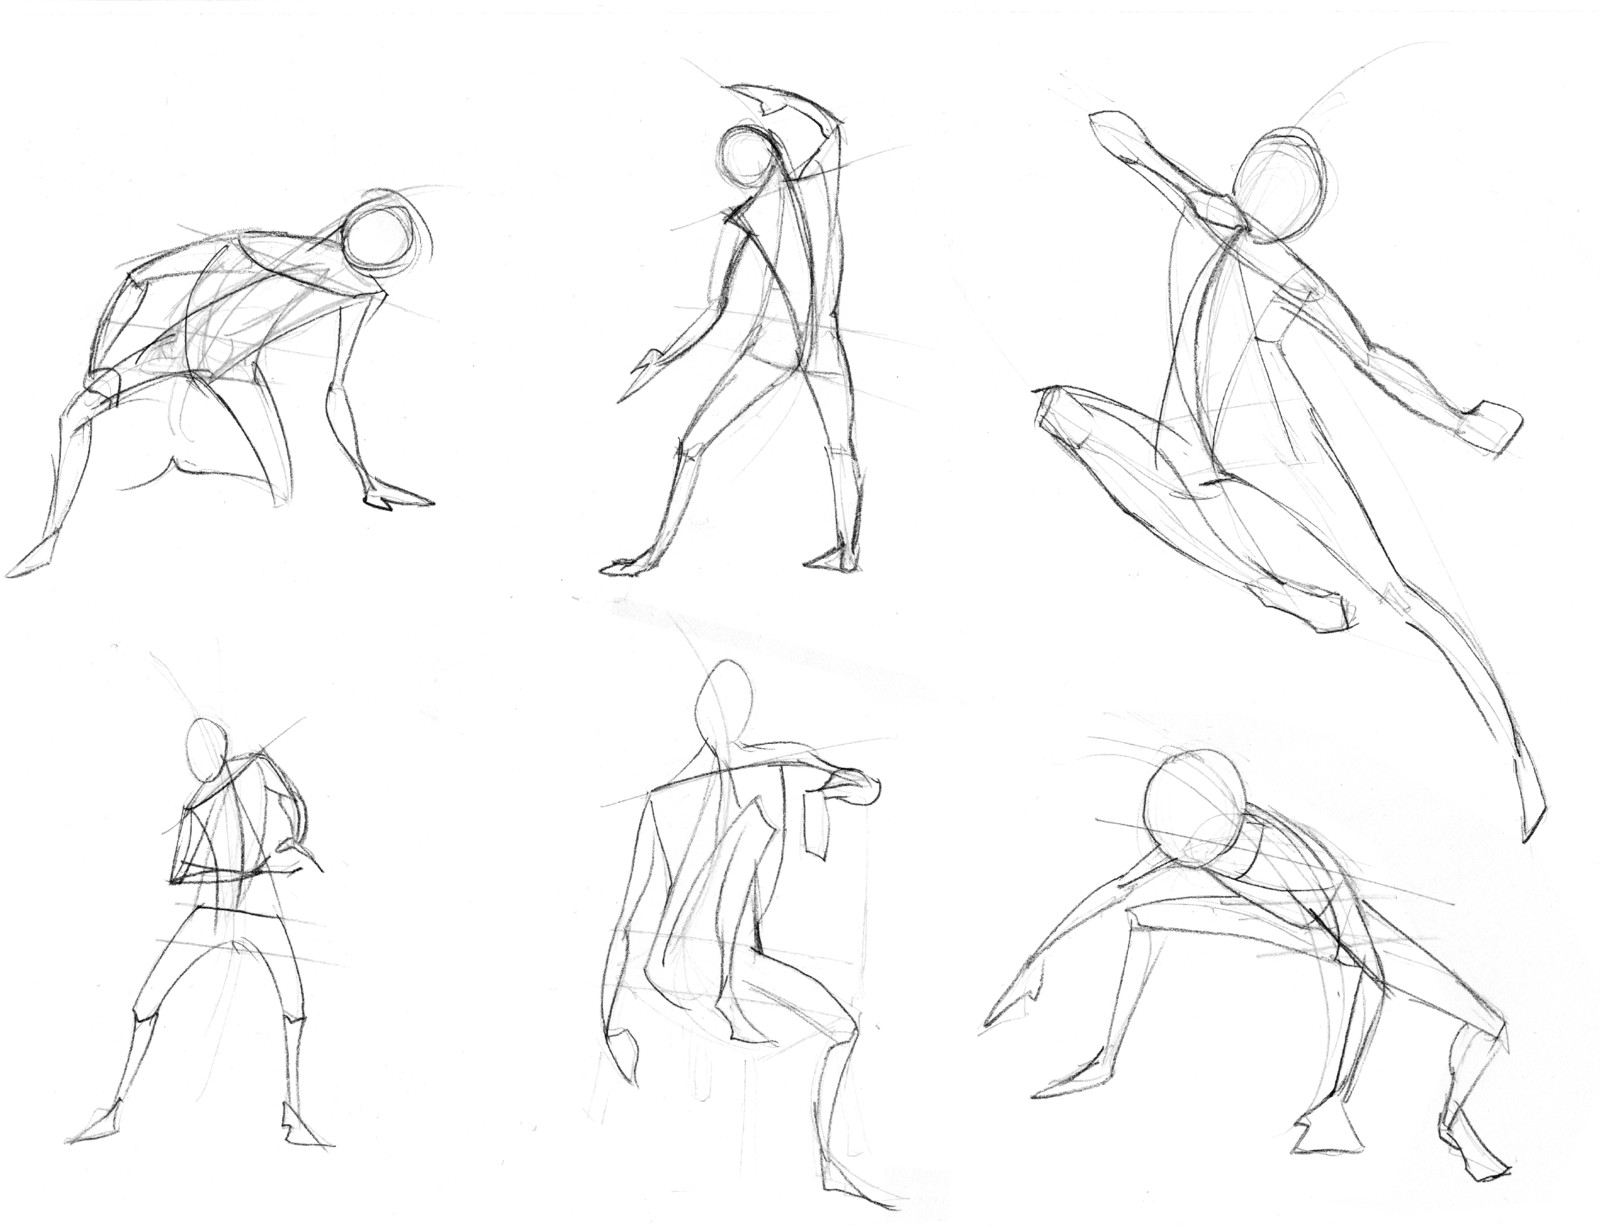 Gestures and basic body shapes.